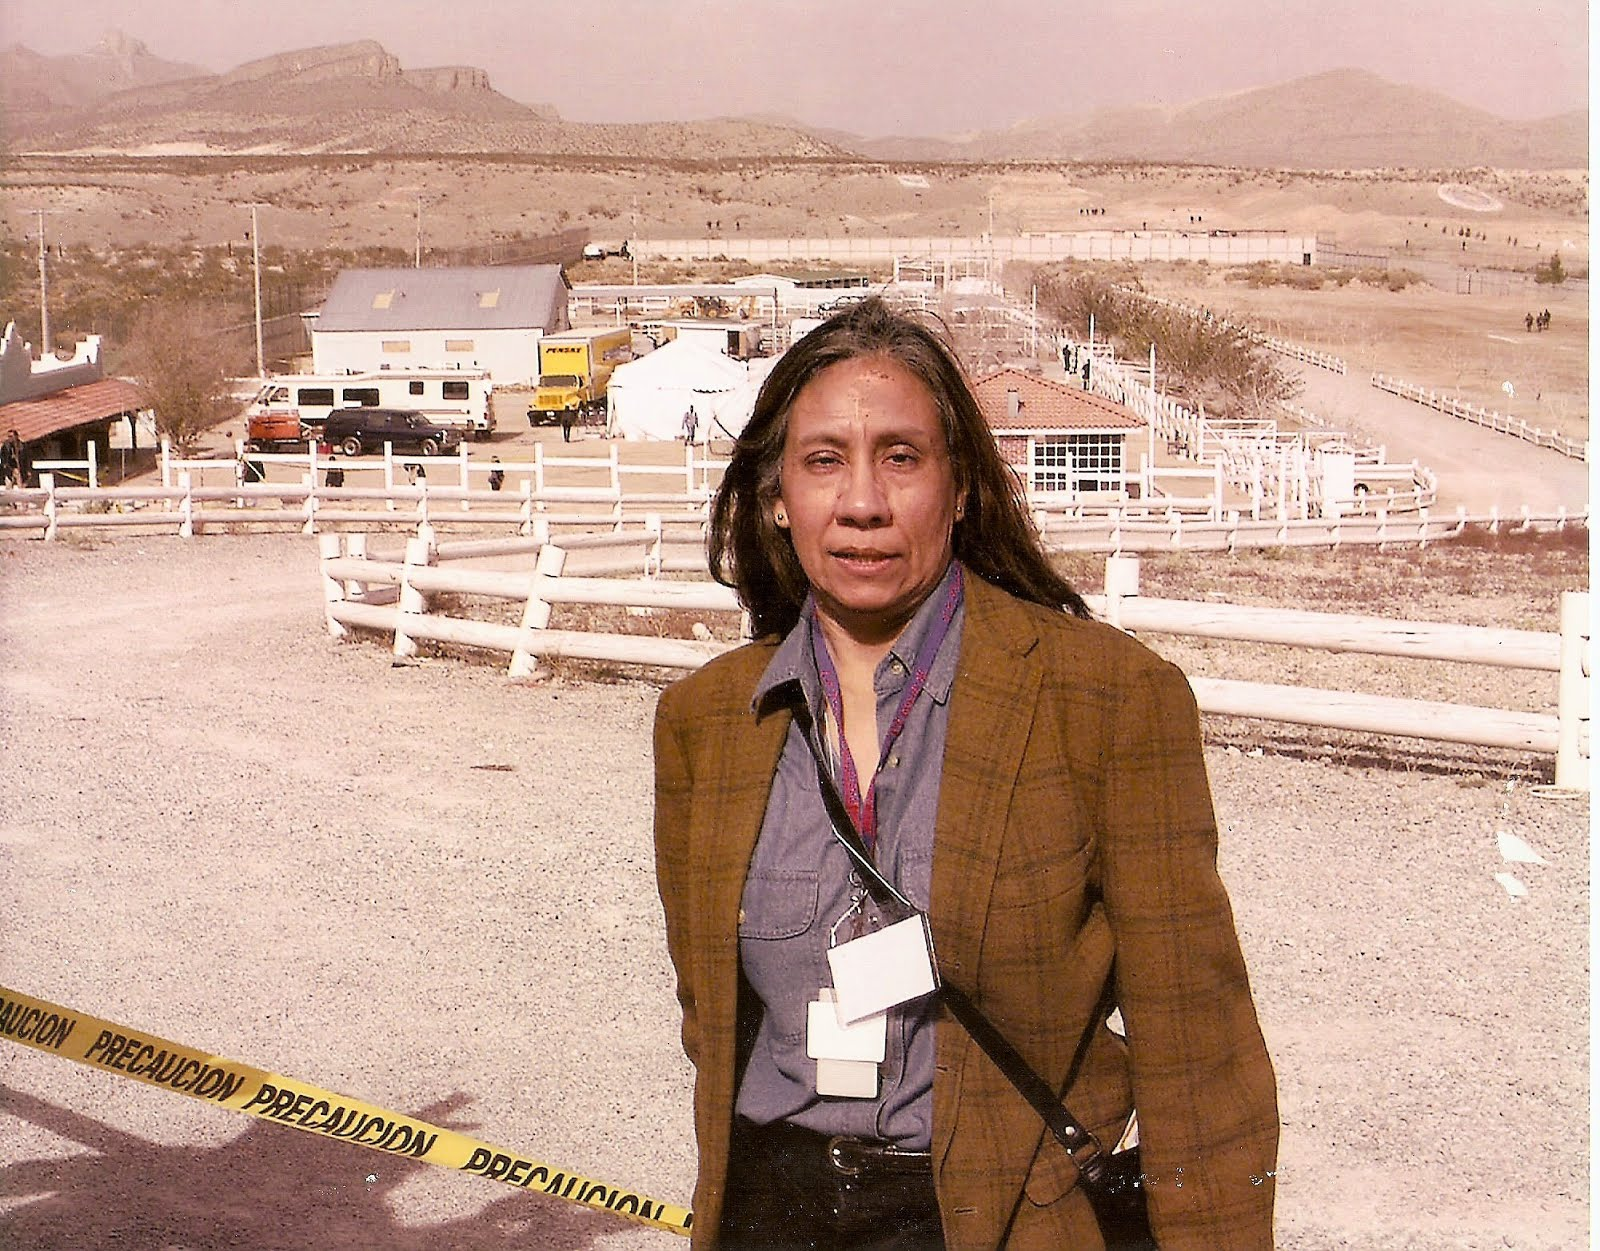 Diana Washington Valdez